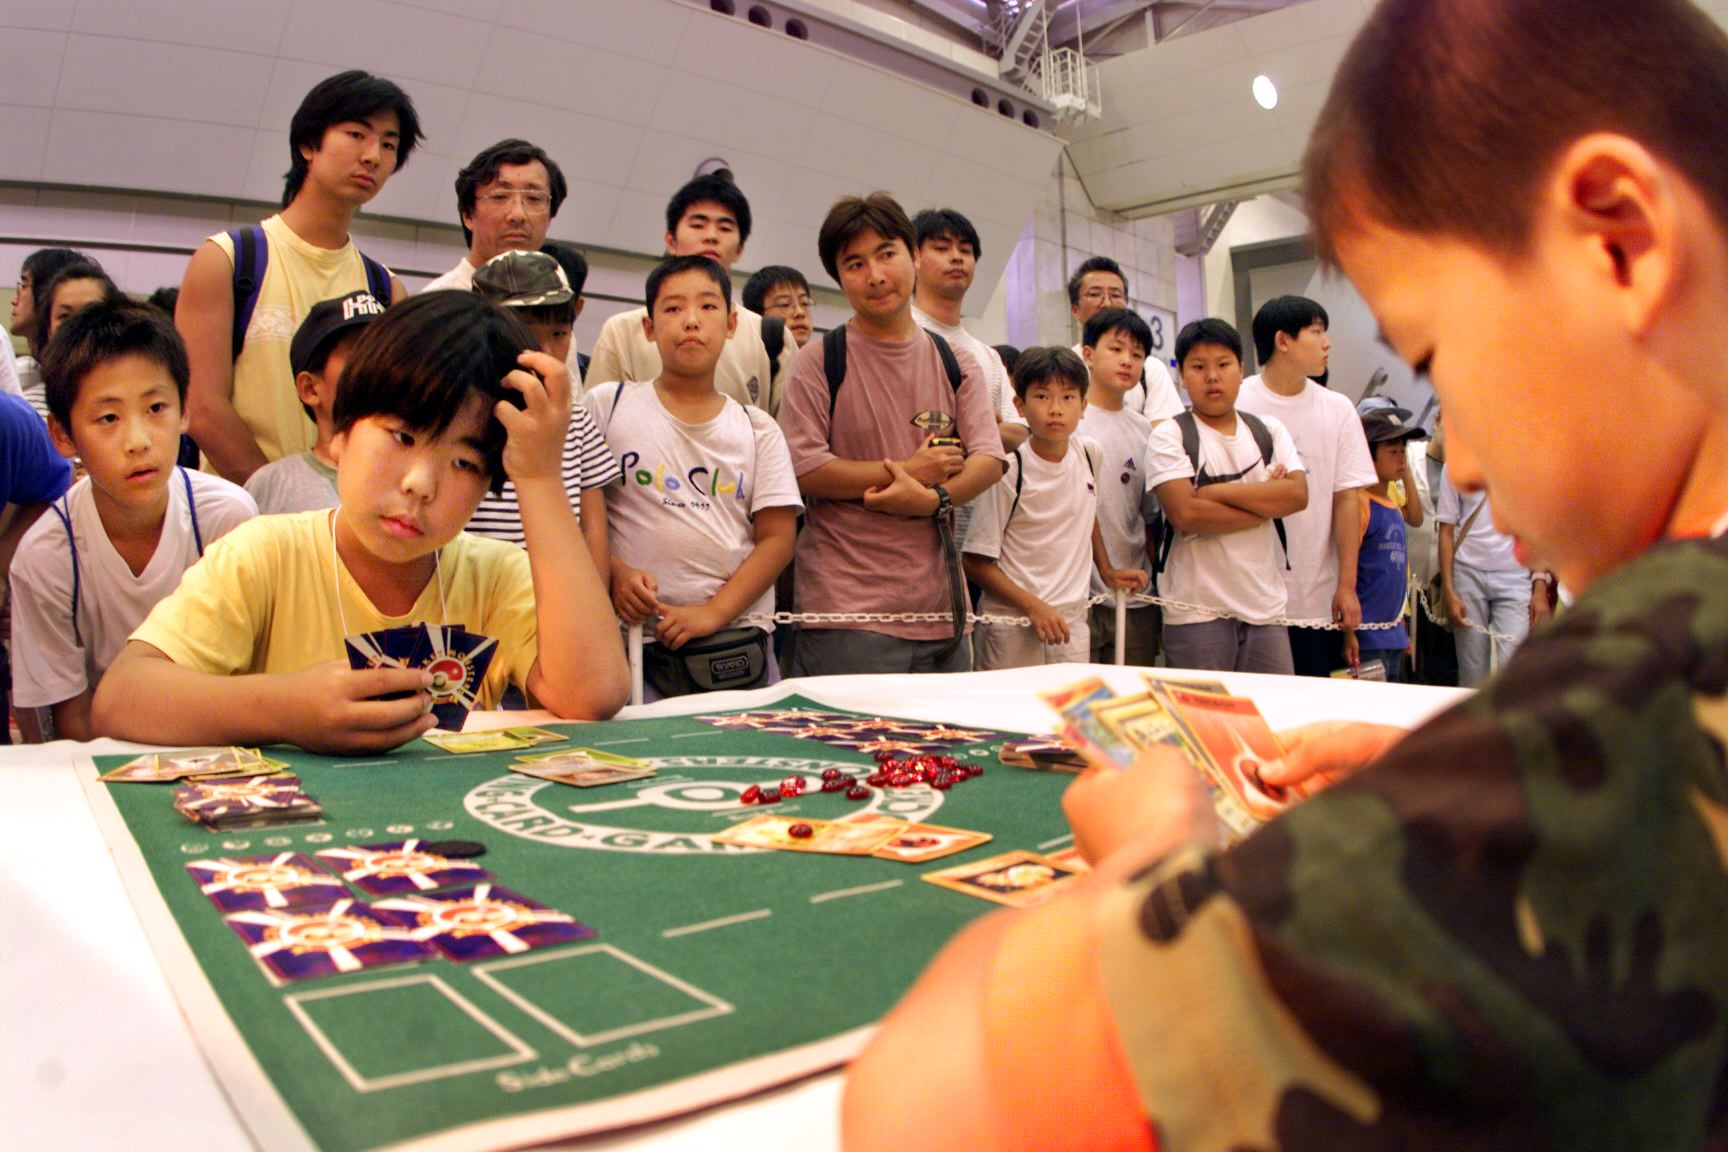 A crowd watches as Japanese boys play a close game in Tokyo 04 August 1999 as they participate in a Pokemon (Pocket Monster) card game tournament.